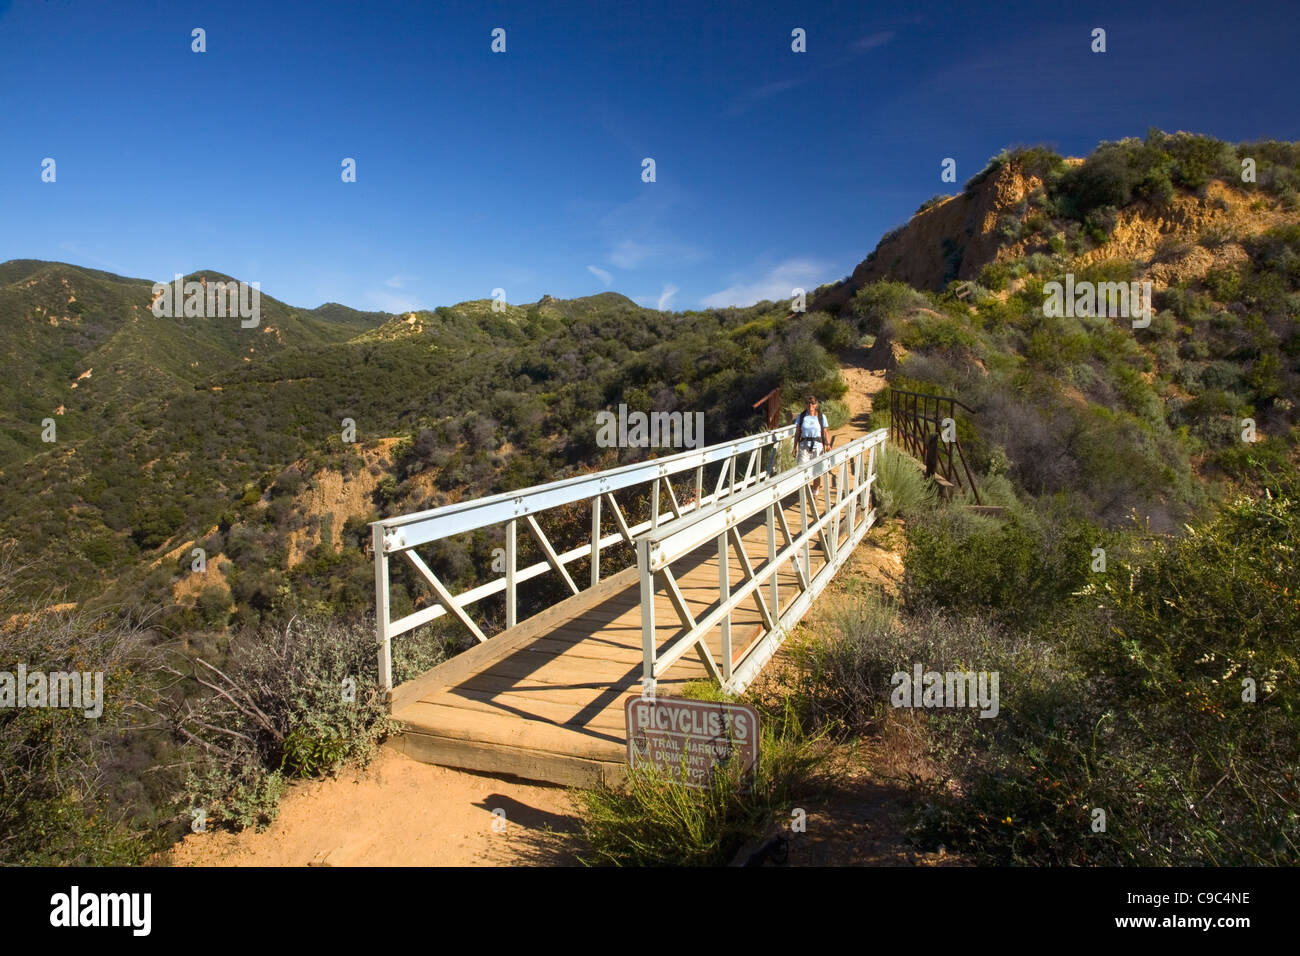 CALIFORNIA - Hiker on bridge on the Backbone Trail in the Topanga State Park section of the Santa Monica Mountains. - Stock Image